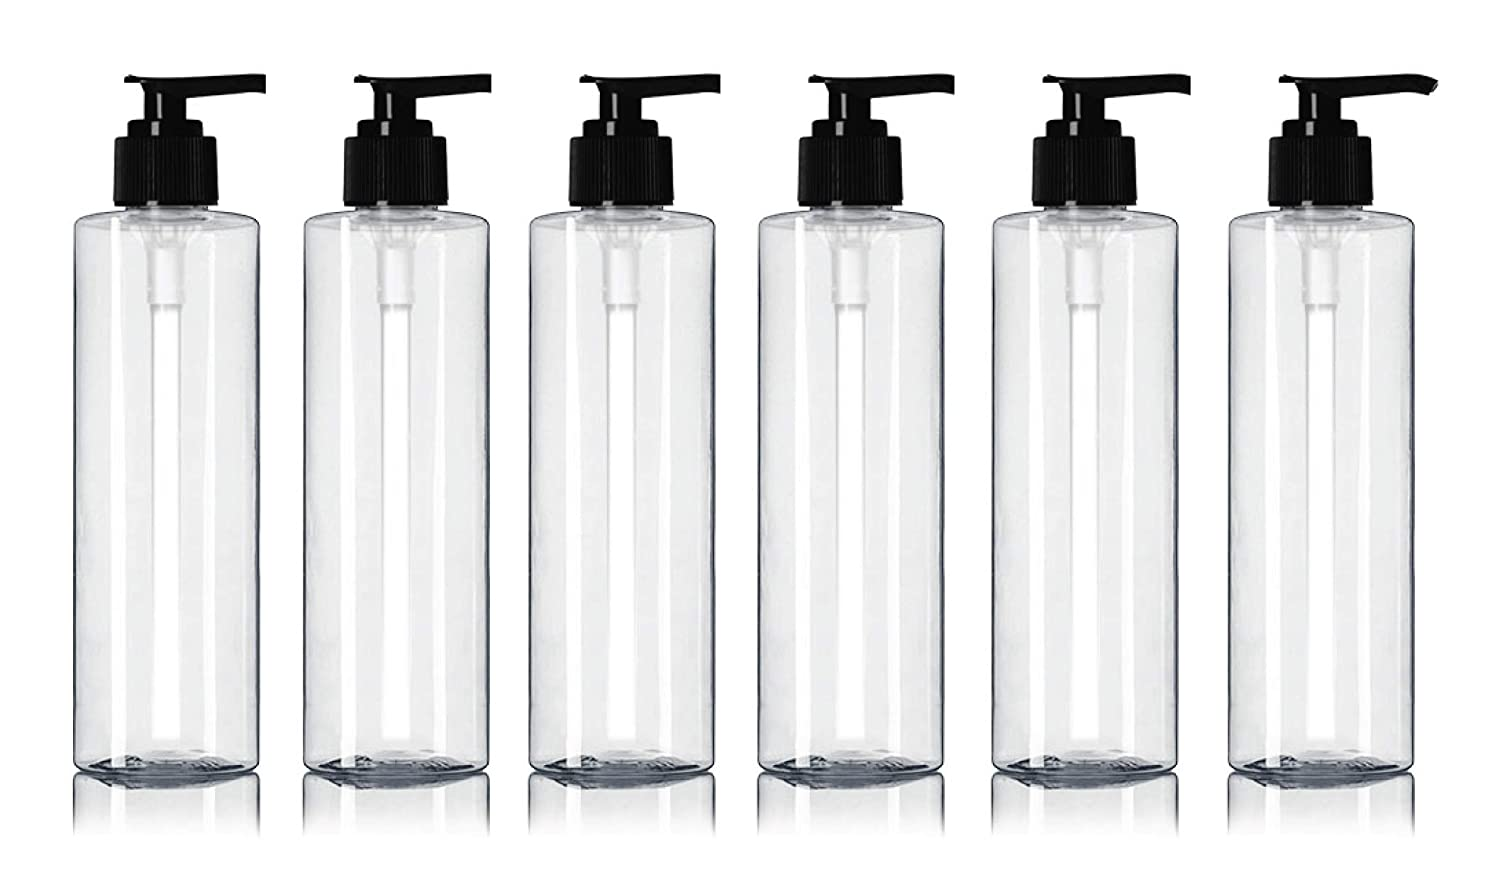 Newday Bottles, Empty Plastic Massage Lotion Bottles with Pump Dispenser BPA-Free 8 oz, Clear, Pack of 6